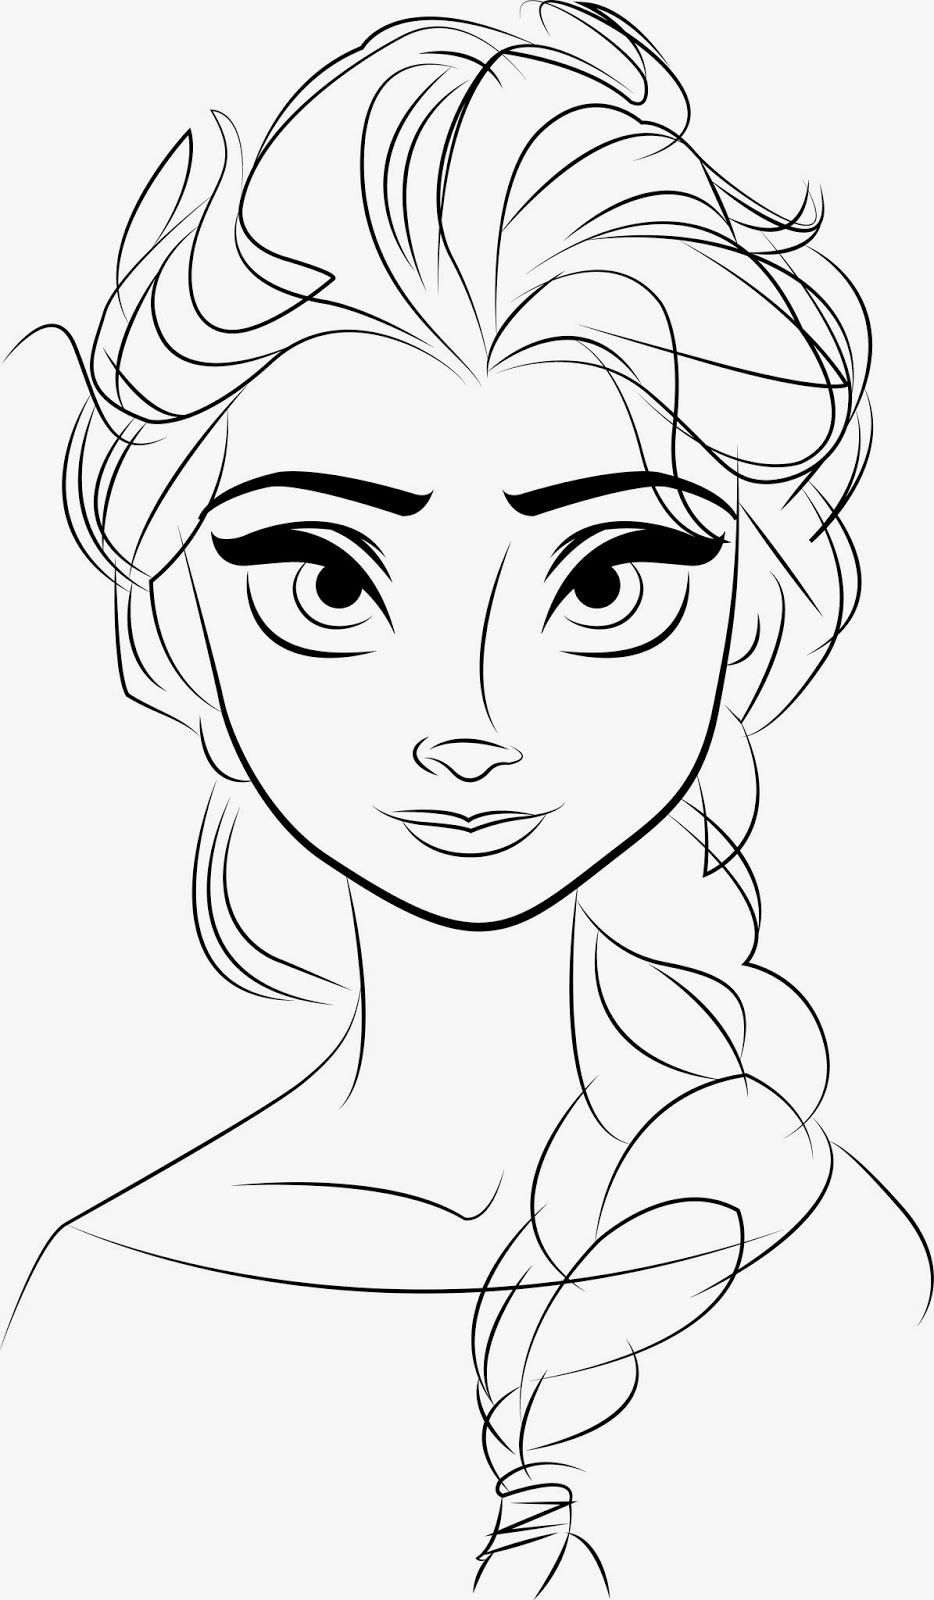 how to draw elsa from frozen disney frozen elsa line drawings google search elsa from elsa draw how frozen to